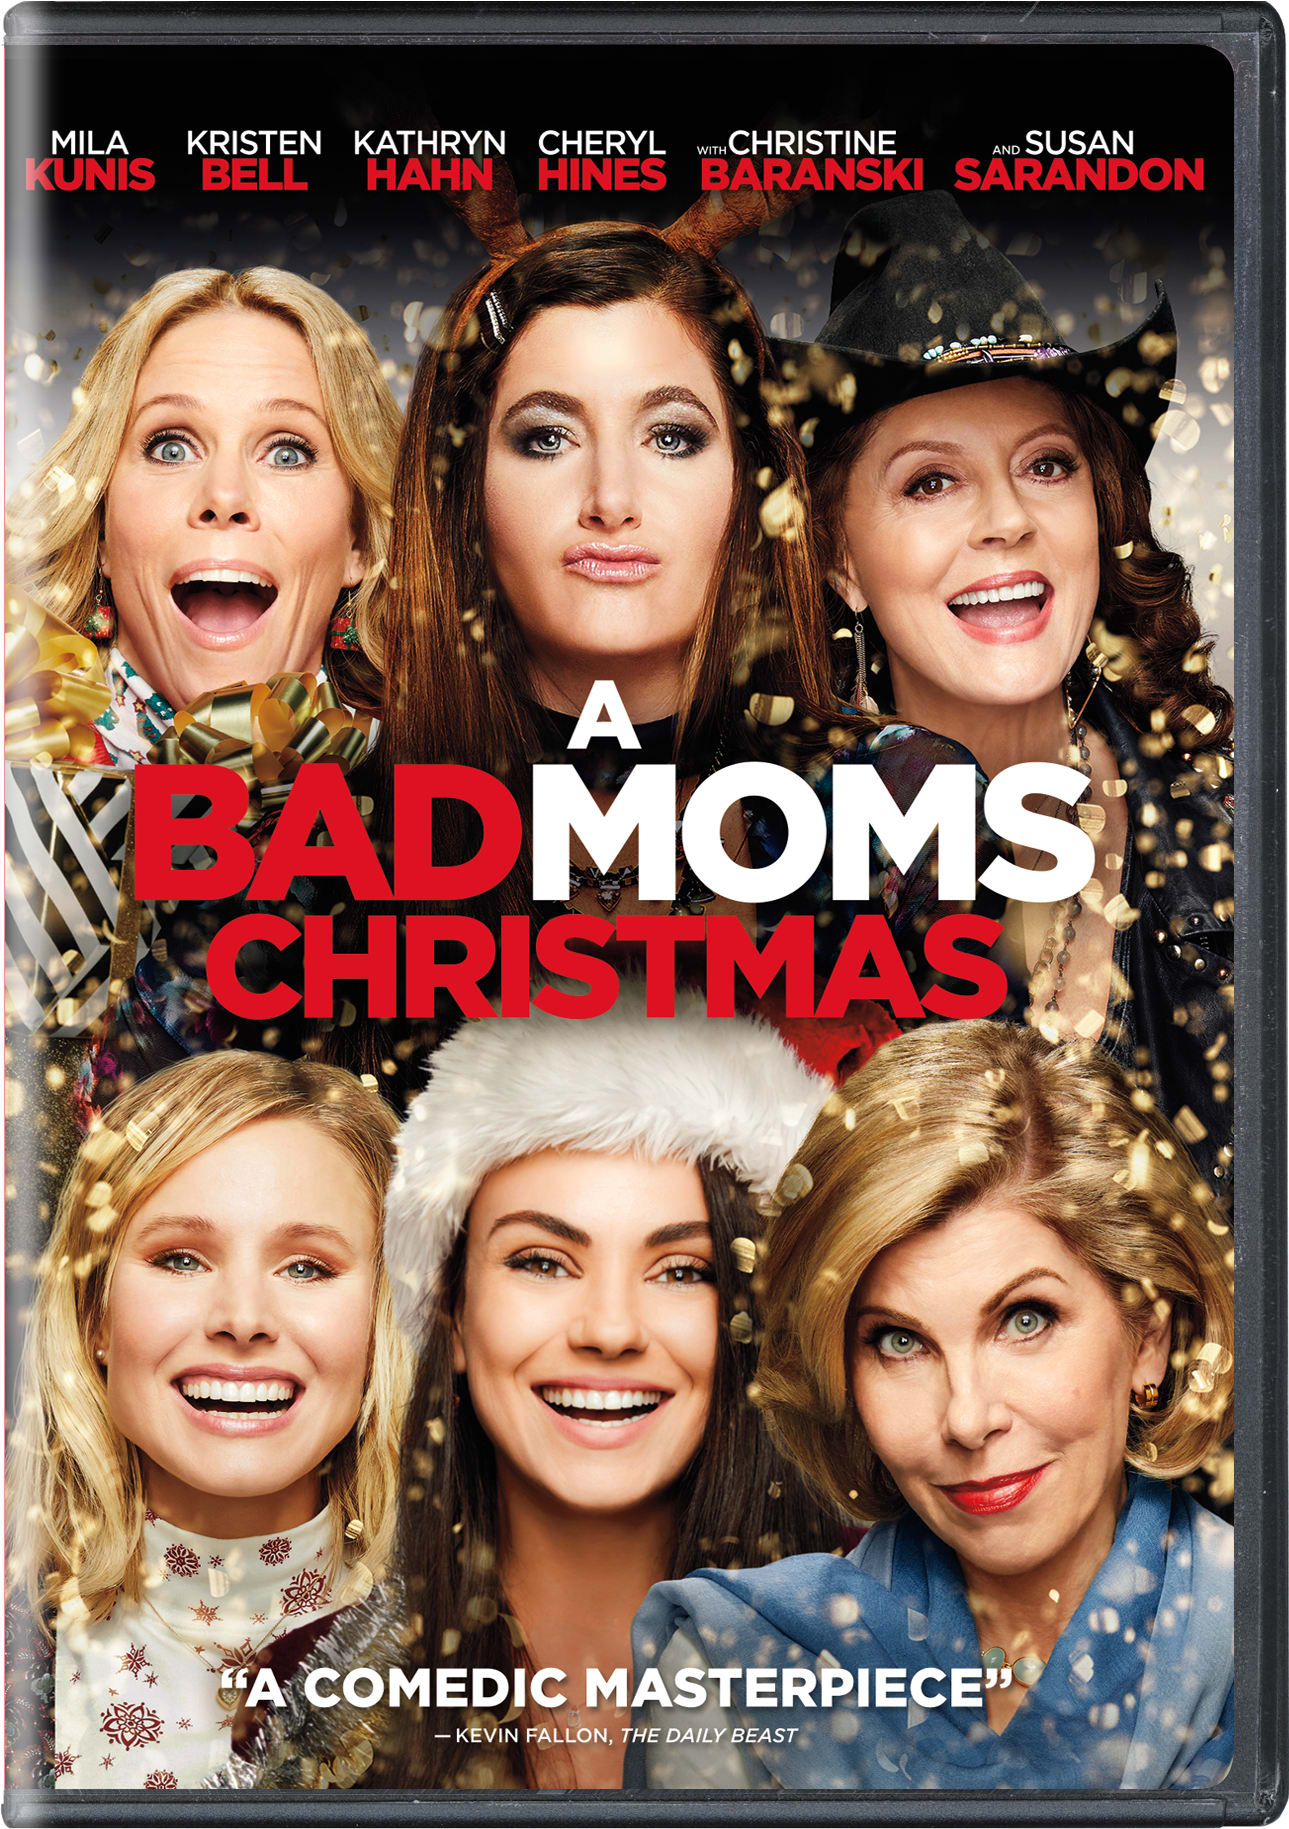 A Bad Moms Christmas [DVD]